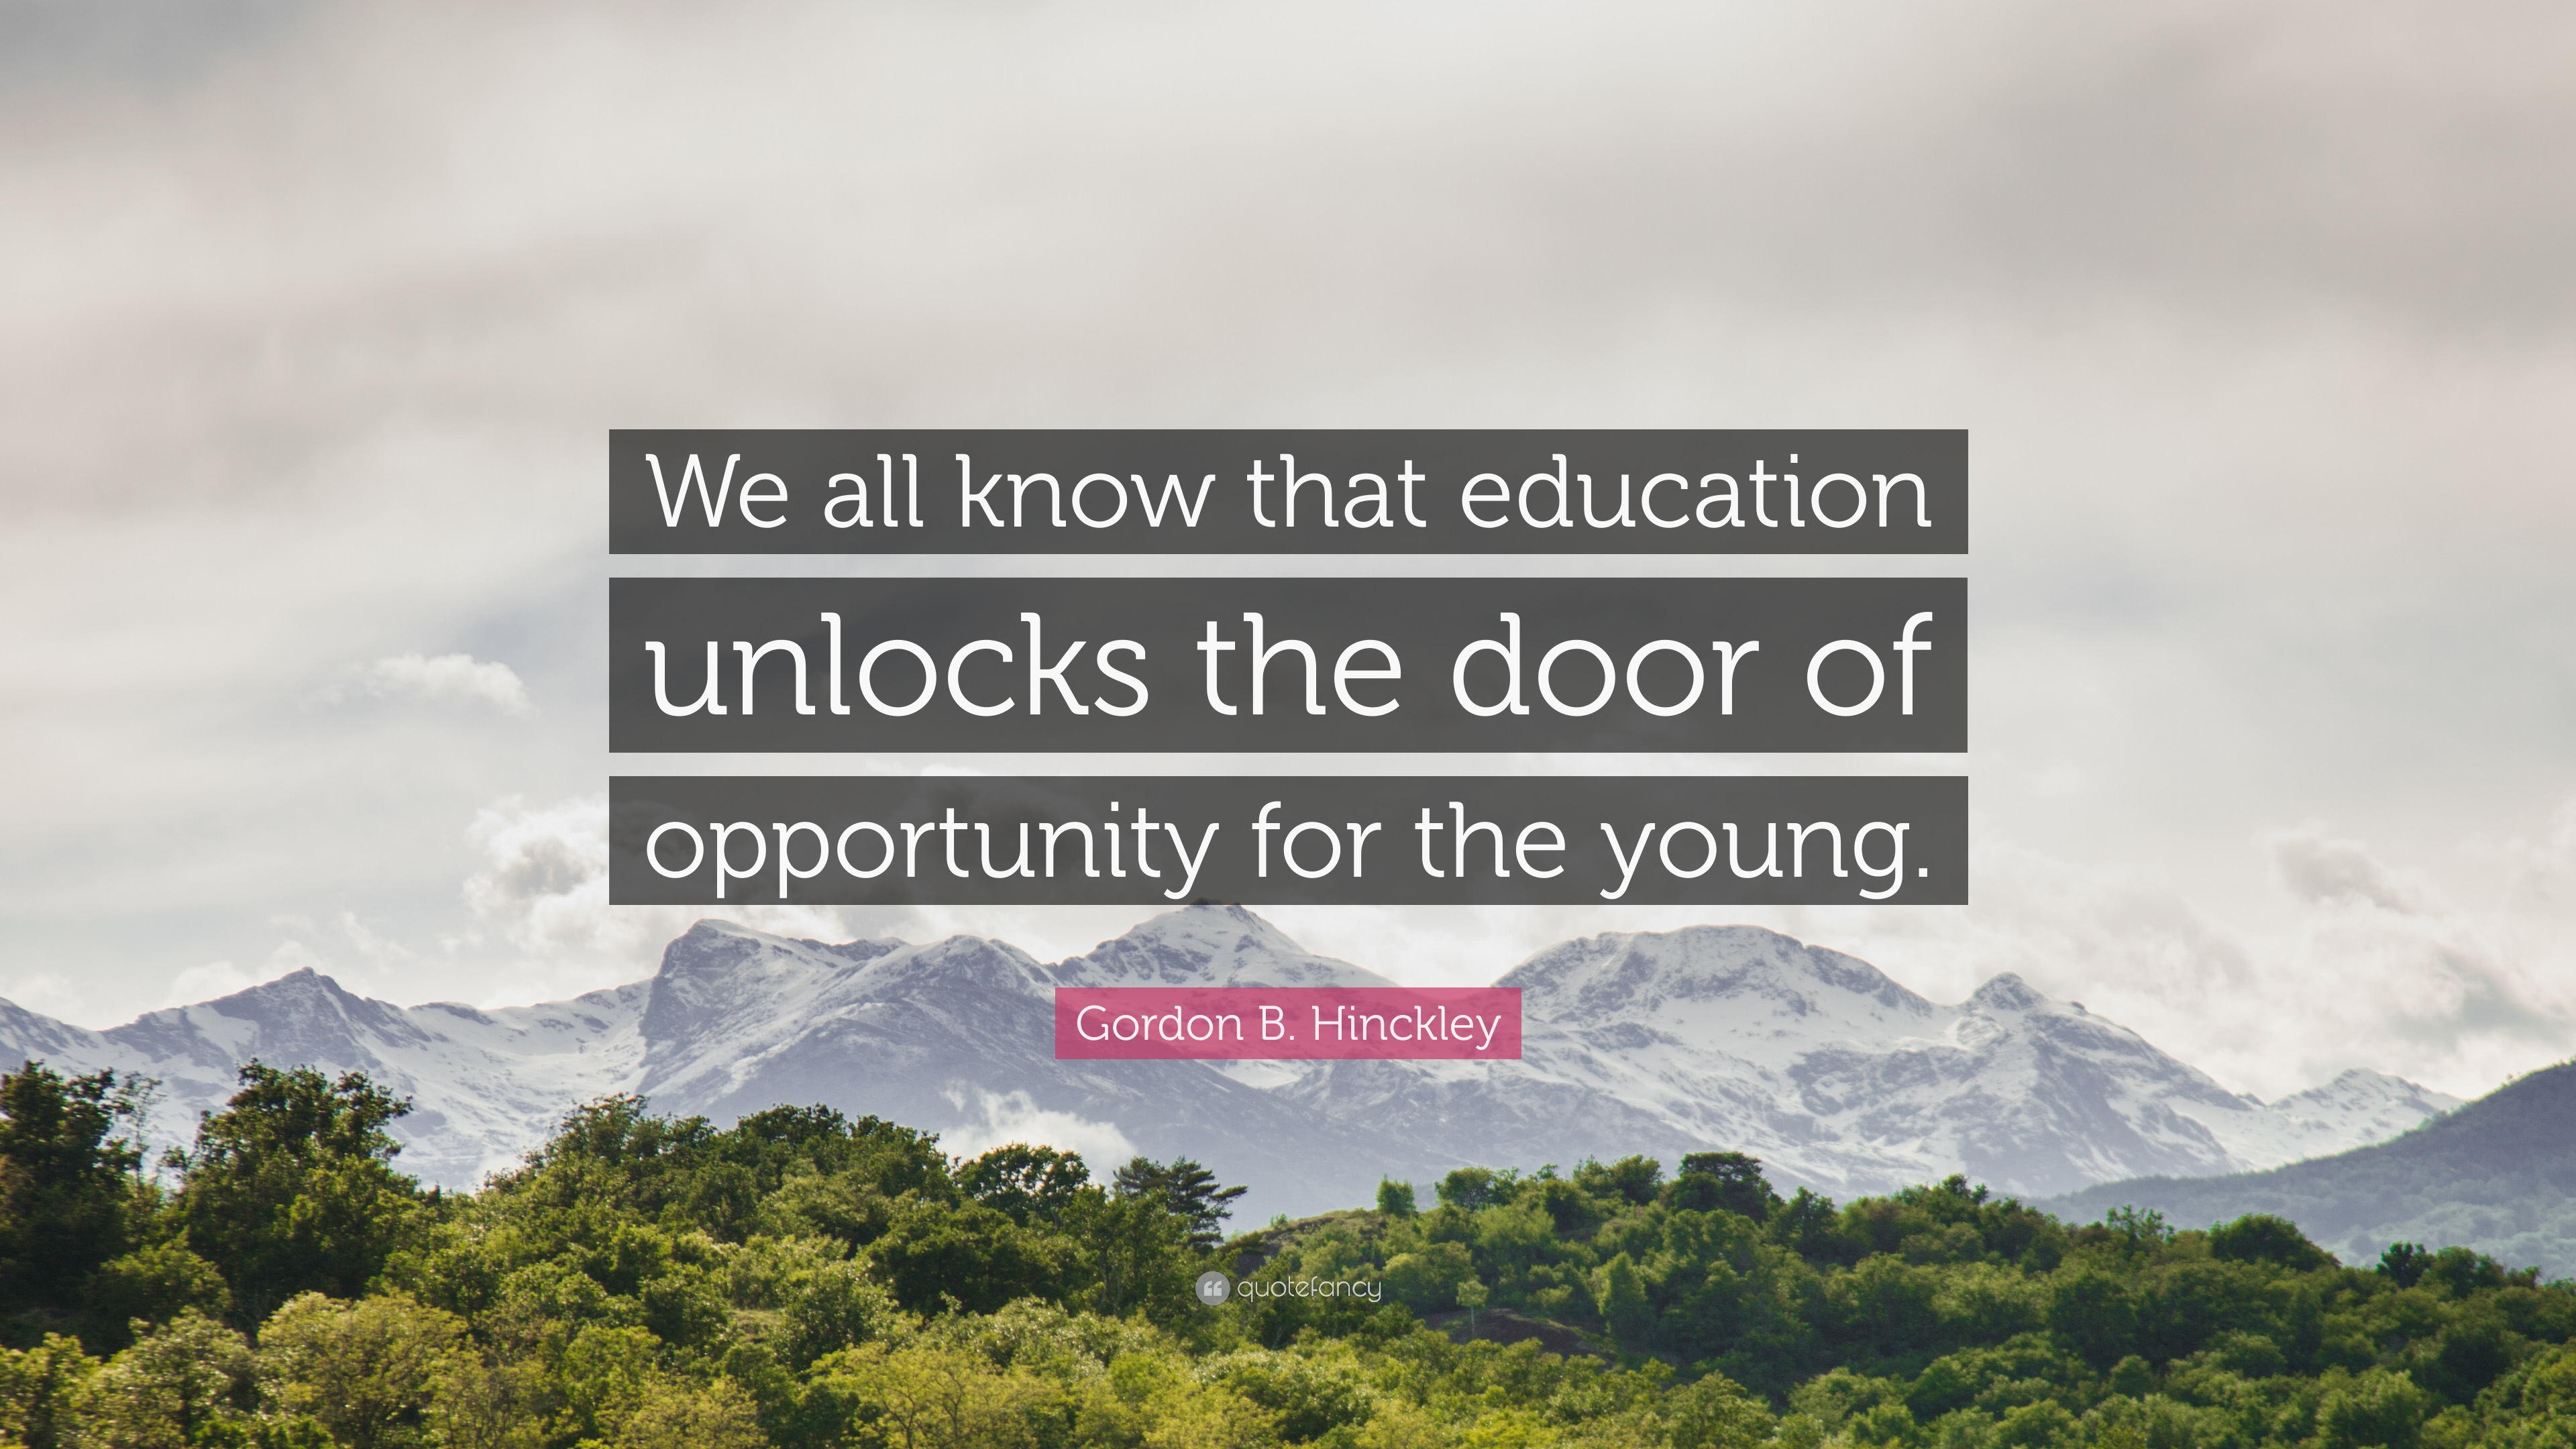 Gordon B Hinckley Quote We All Know That Education Unlocks The Door Of Opportunity For The Young 7 Wallpapers Quotefancy